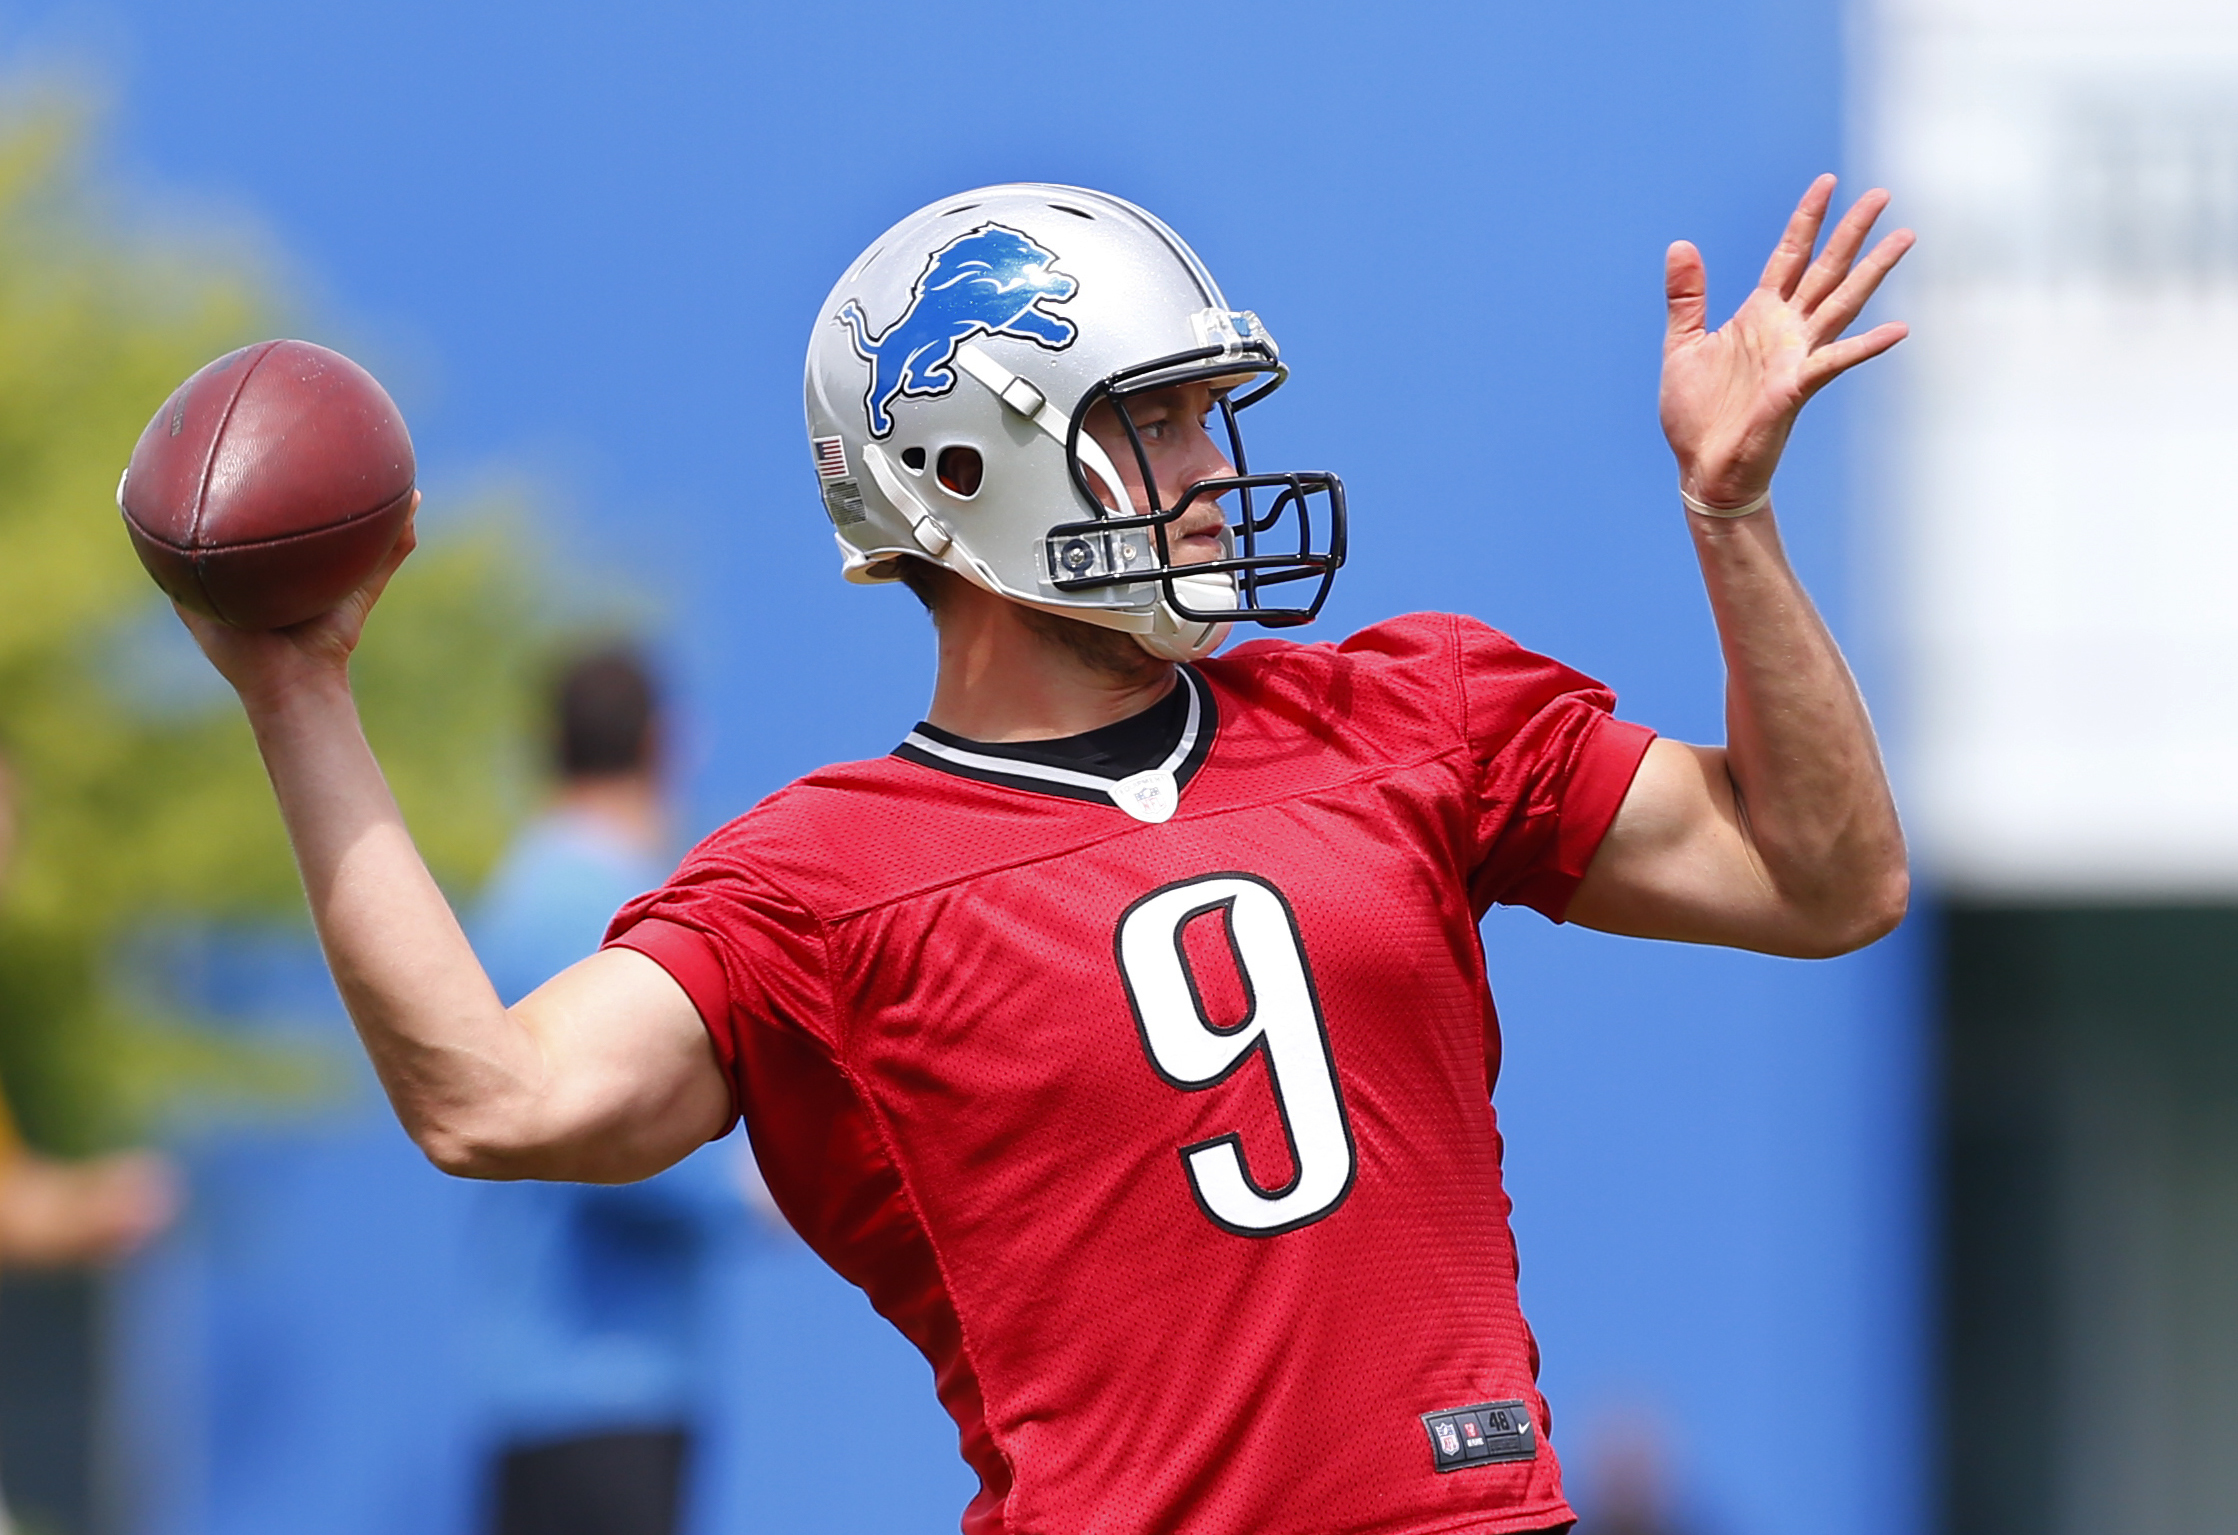 FILE - In this June 14, 2016, file photo, Detroit Lions quarterback Matthew Stafford throws during NFL football practice in Allen Park, Mich. Stafford has been sacked 89 times the past two years, ranking among NFL leaders. The Lions averaged a league-low